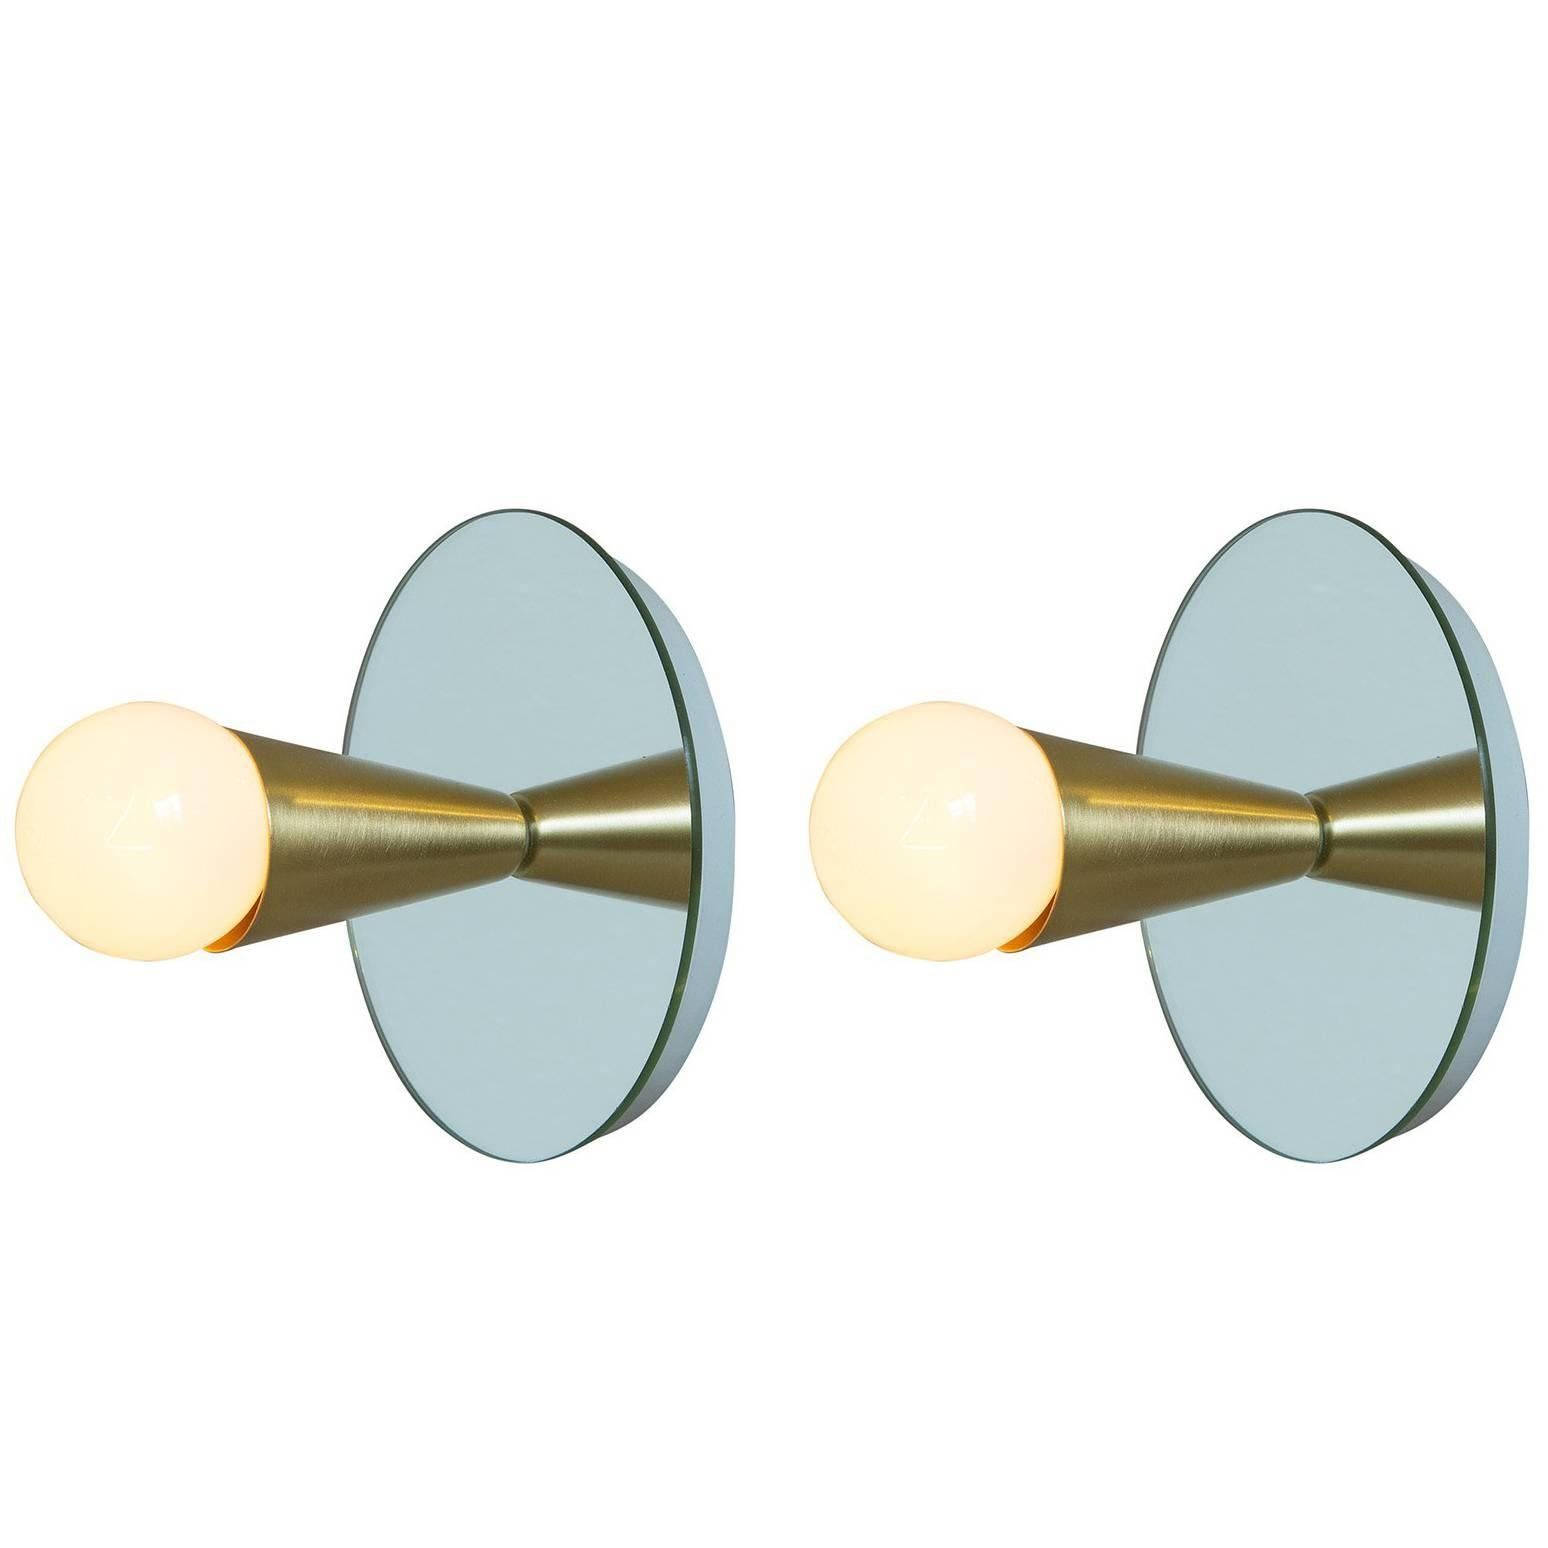 Echo One Sconce Pair/Flush Mount in Brass, from Souda, Made to Order